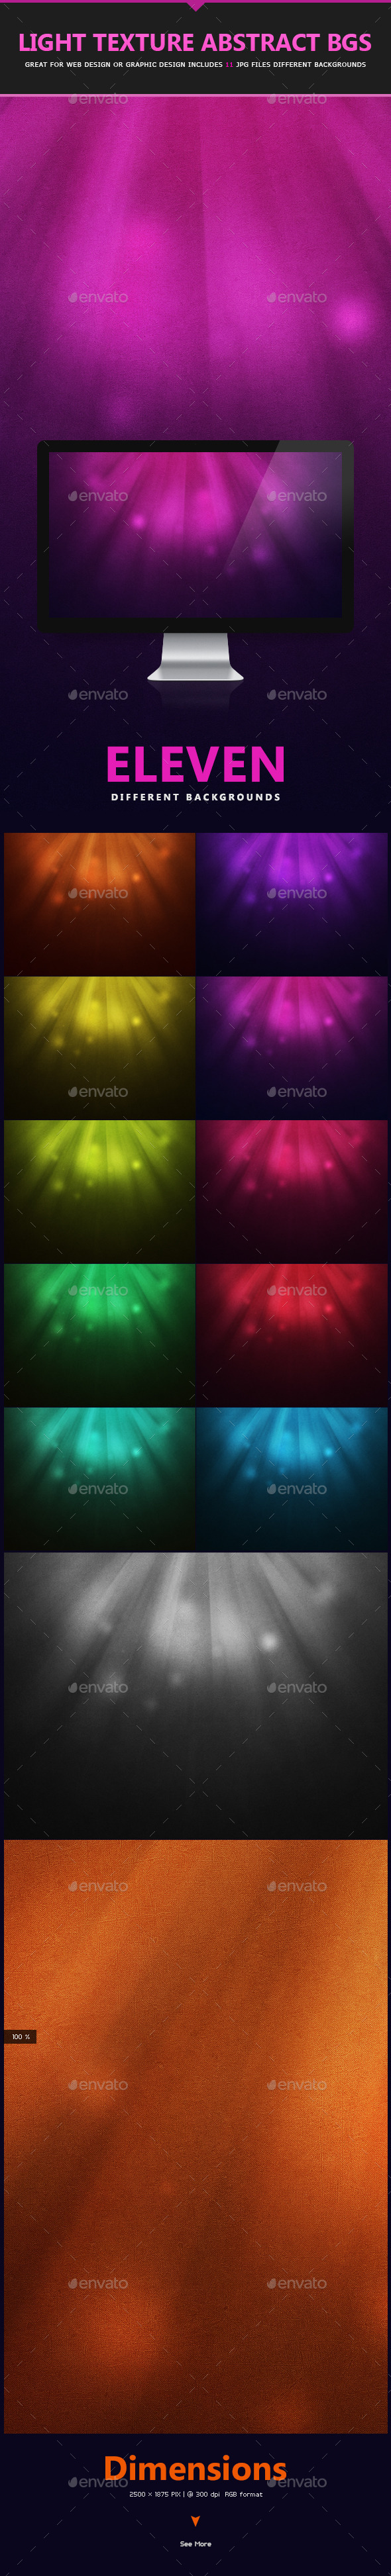 Light texture Abstract Backgrounds